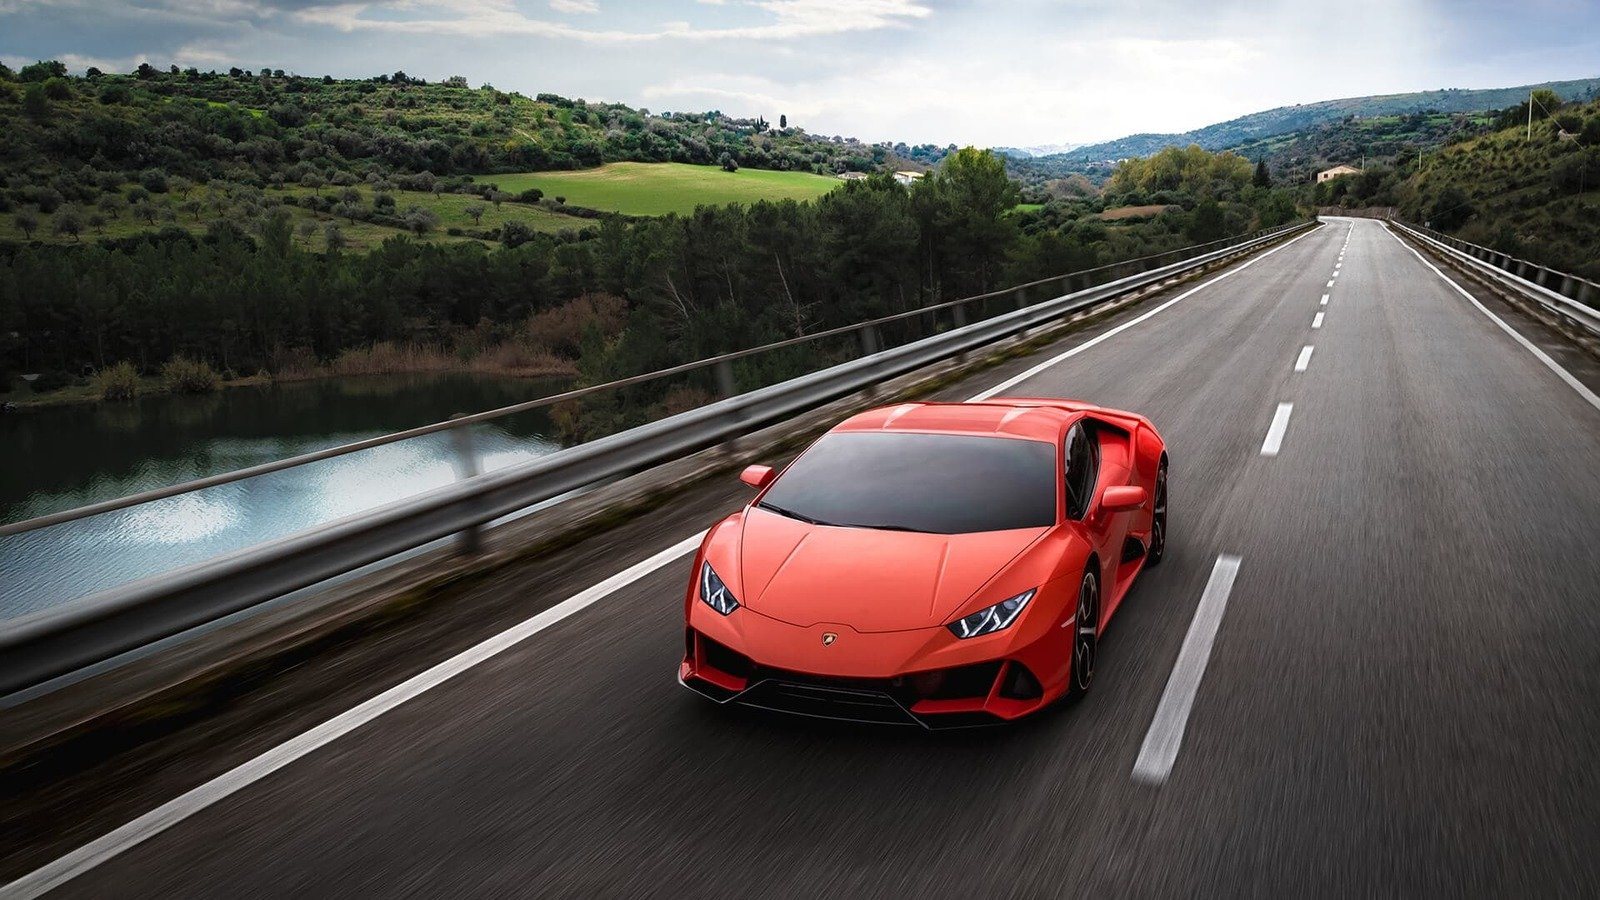 6 Must Know Facts About The 2019 Lamborghini Huracan Evo